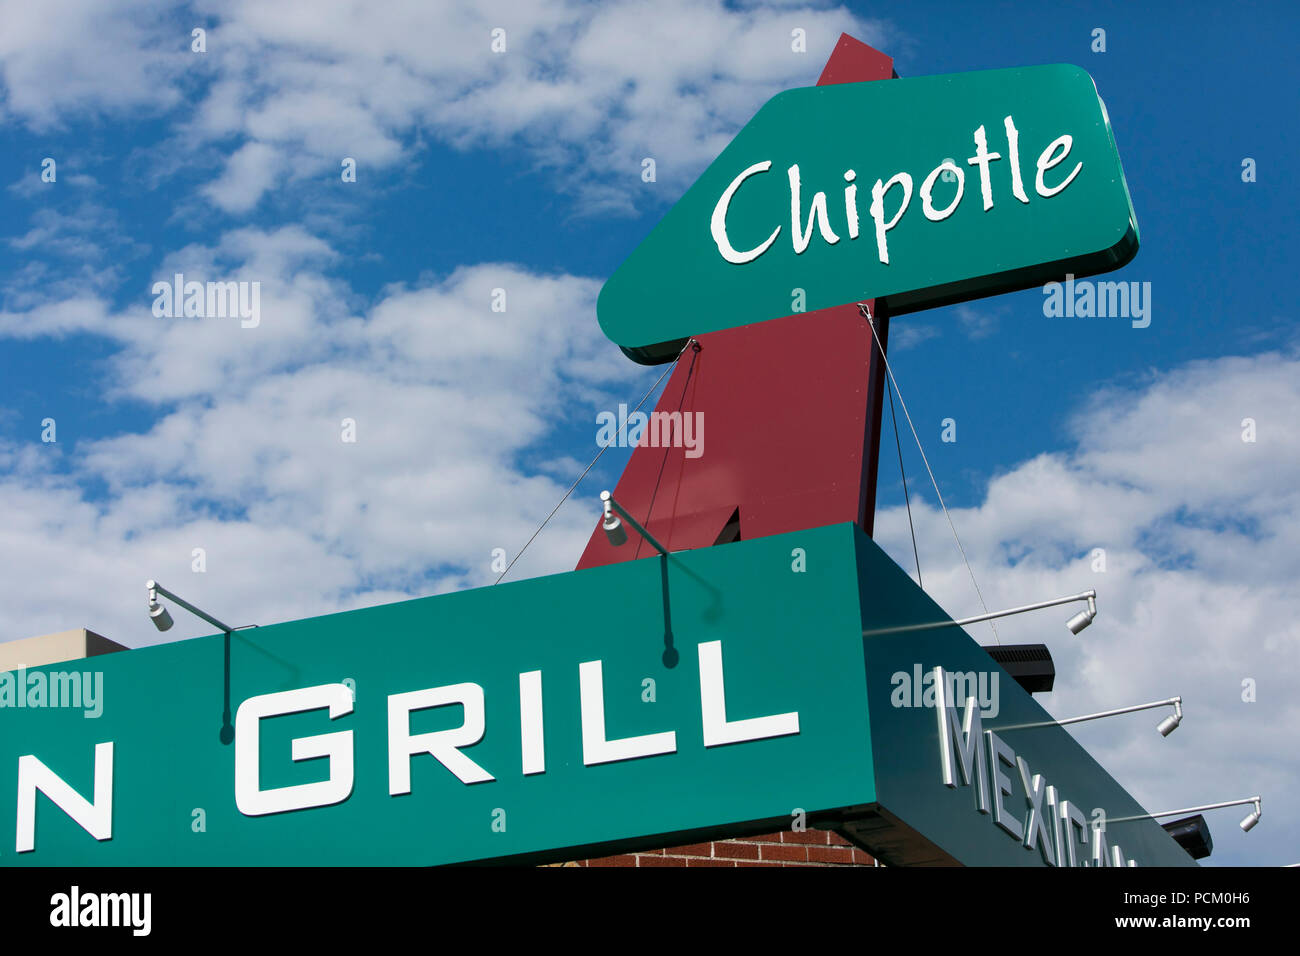 A logo sign outside of the first Chipotle fast casual restaurant location in Denver, Colorado, on July 22, 2018. - Stock Image